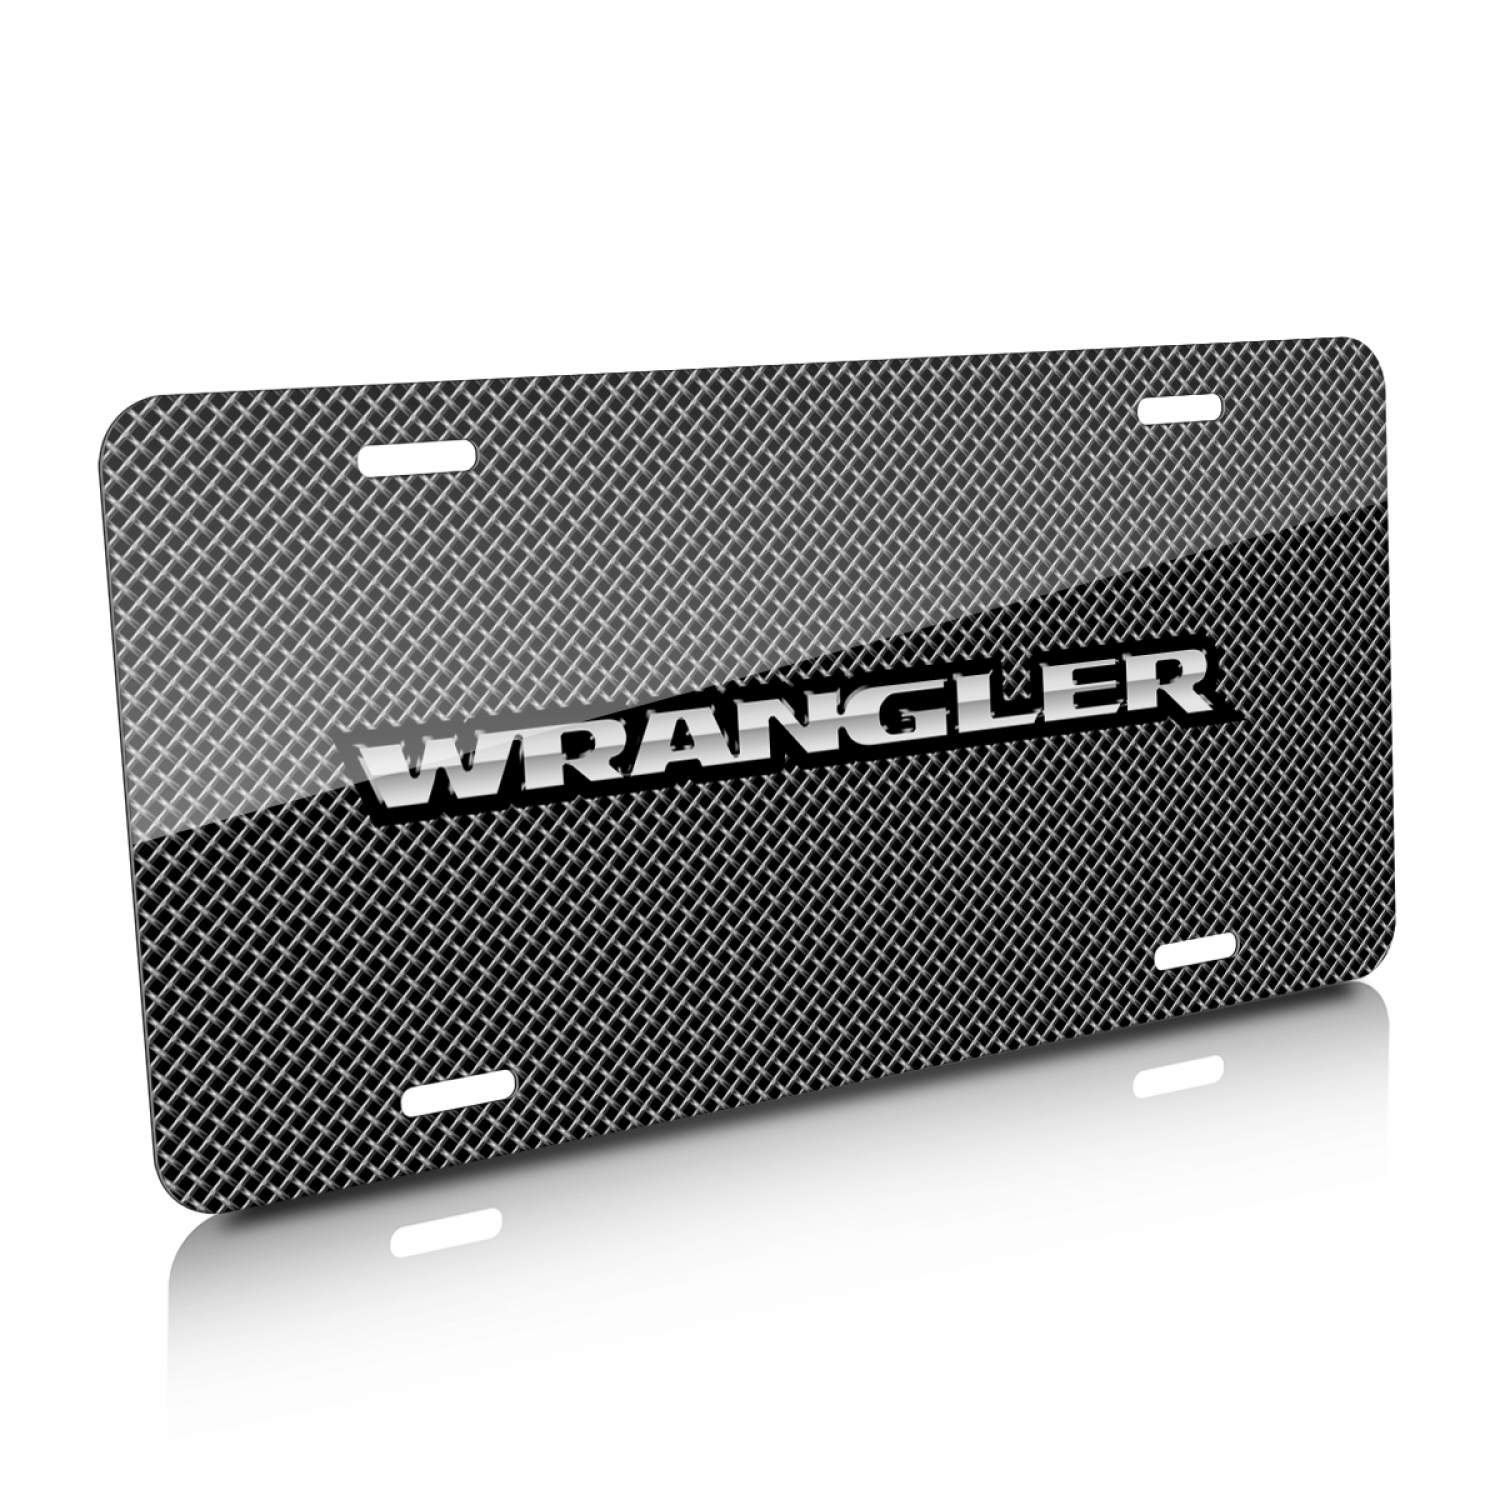 Jeep Wrangler Mesh Grill Graphic Aluminum License Plate